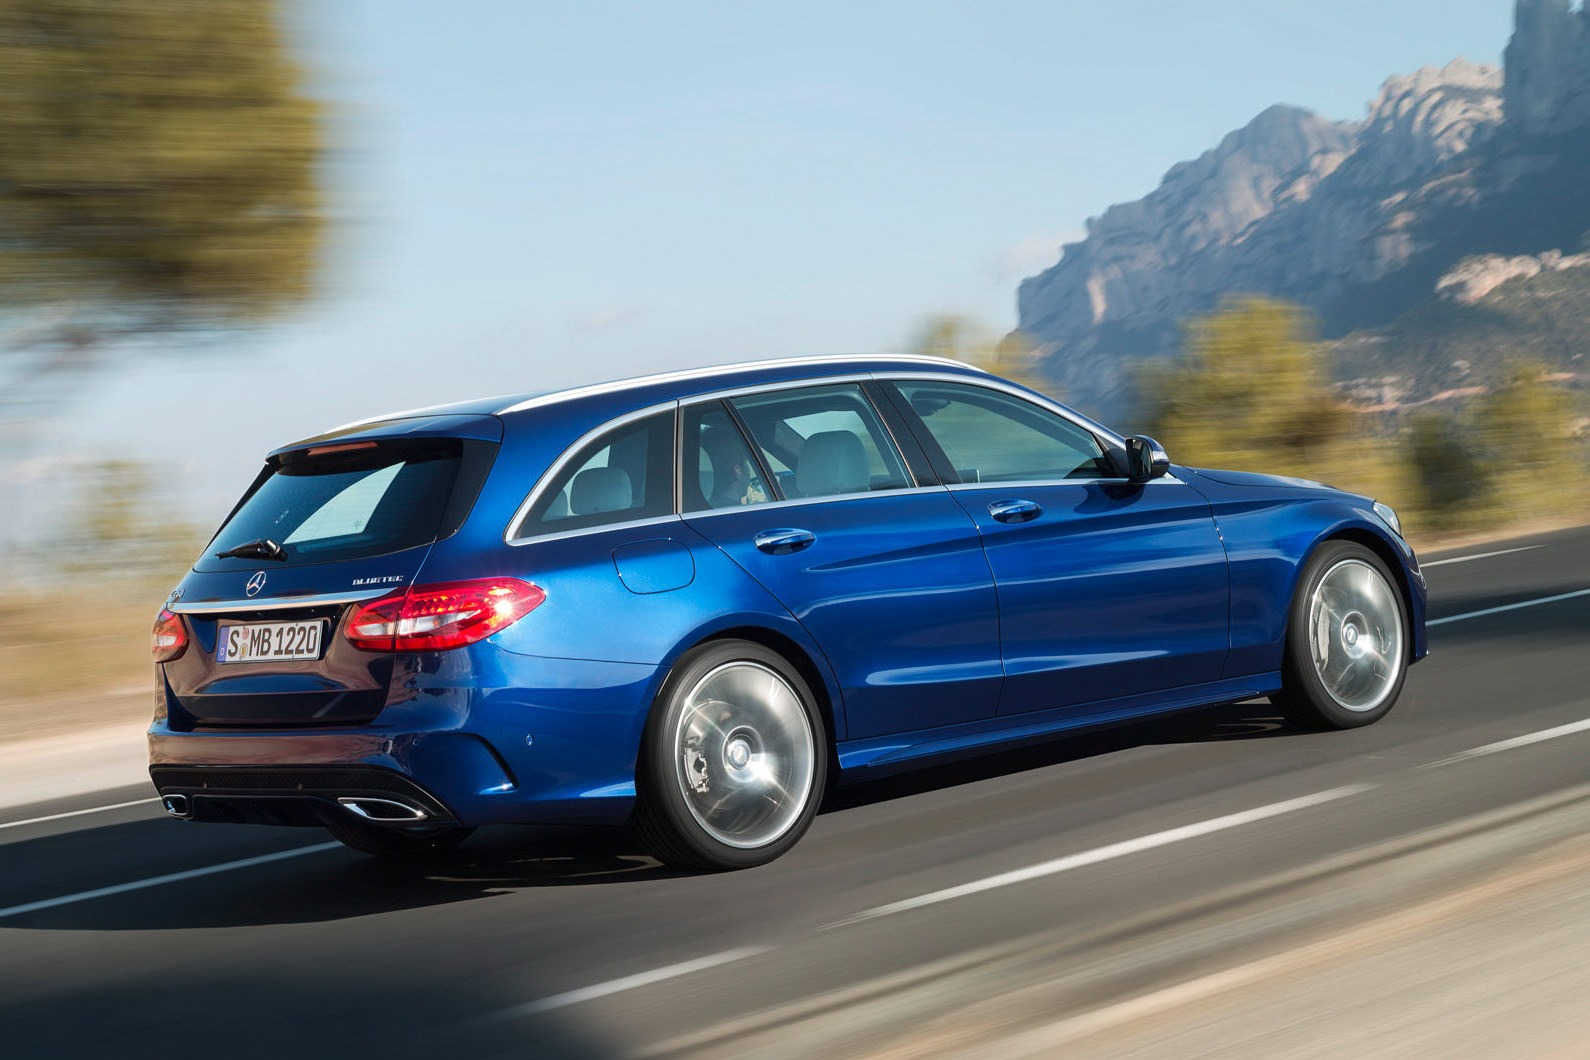 mercedes benz c300 station wagon bluetec hybrid car tuning. Cars Review. Best American Auto & Cars Review